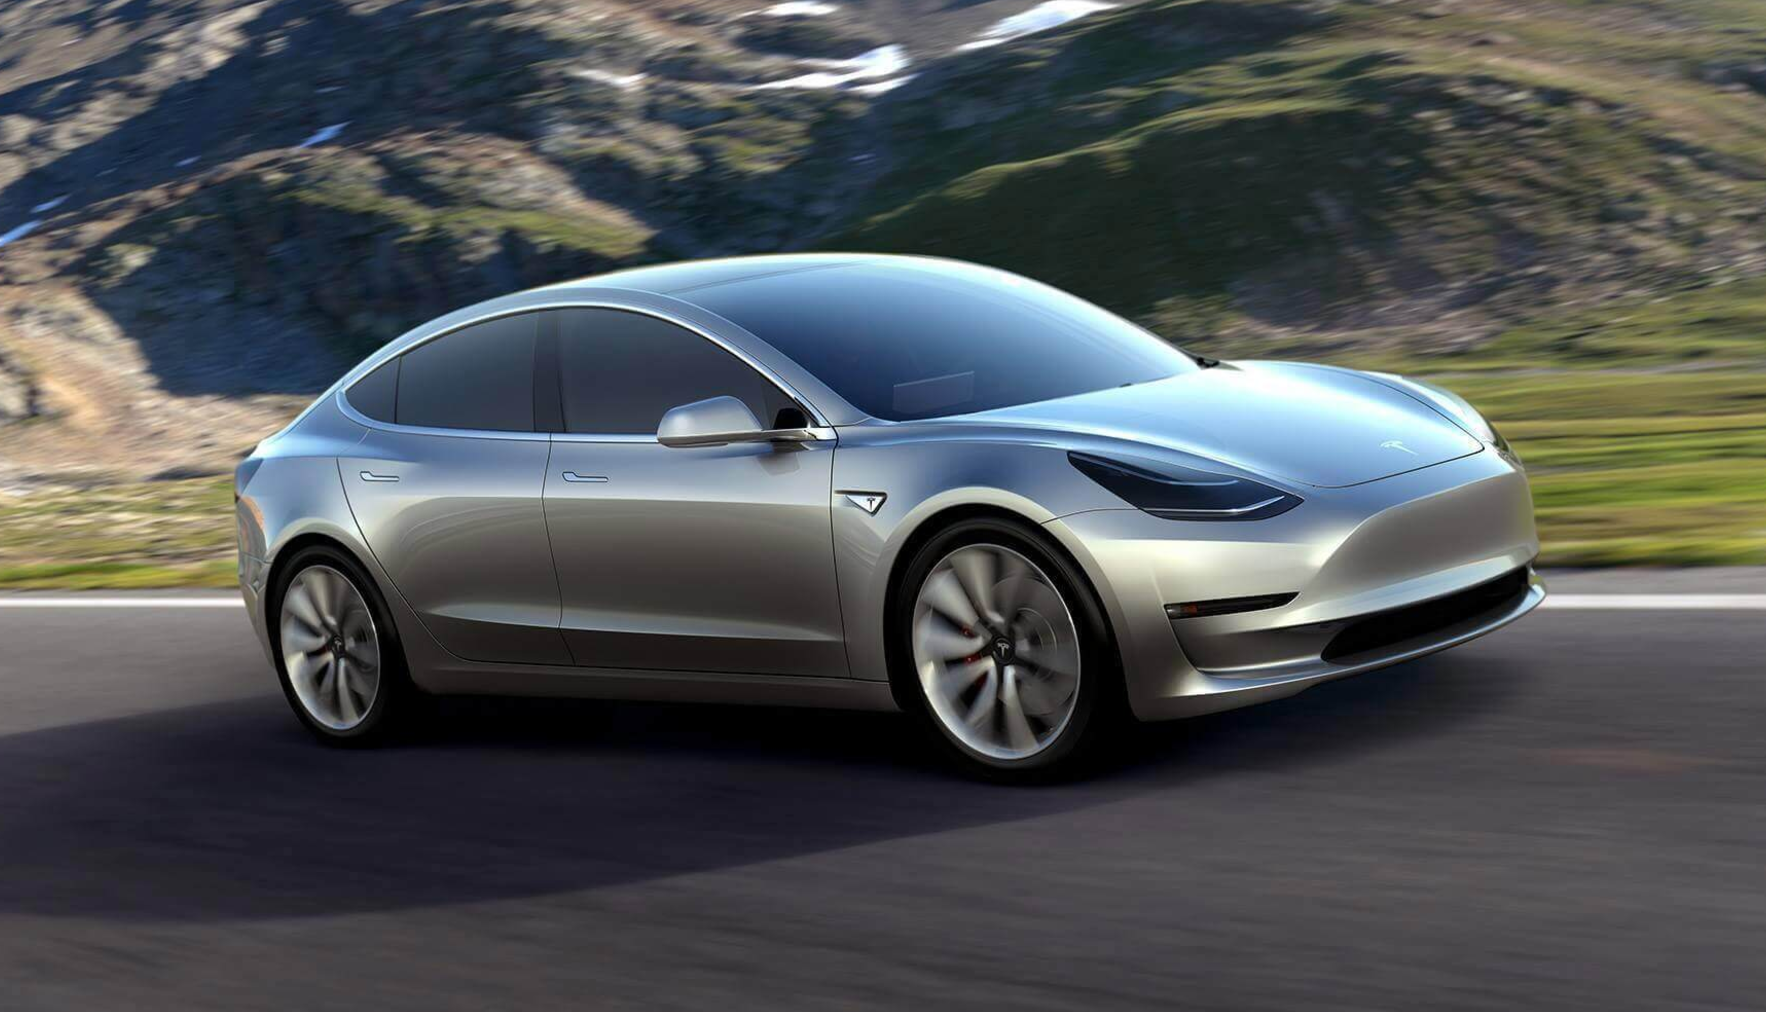 Tesla's Model 3 'Production Hell' May Raise Tensions Between Carmaker, Workers